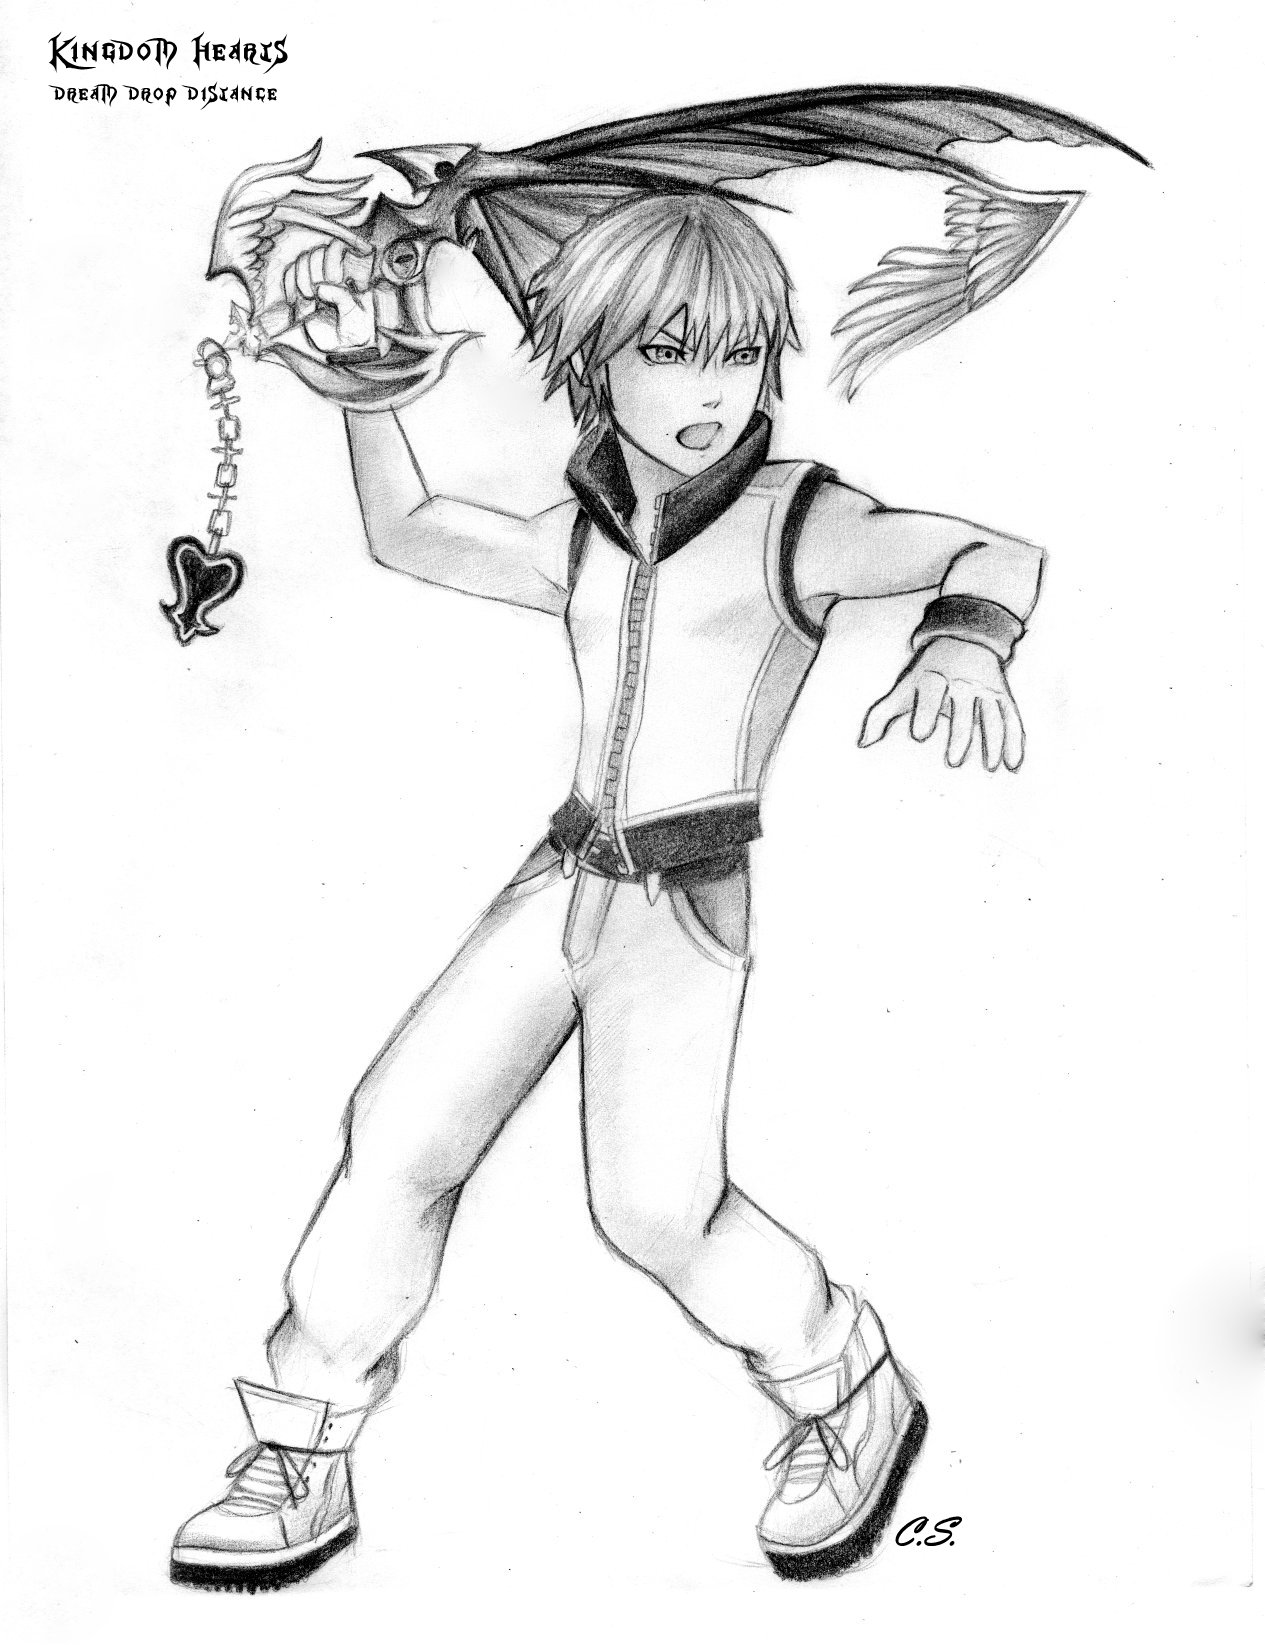 Coloring pages kingdom hearts - Coloring Pages Kingdom Hearts Kingdom Hearts Riku Drawing Kingdom Hearts 3d Riku By